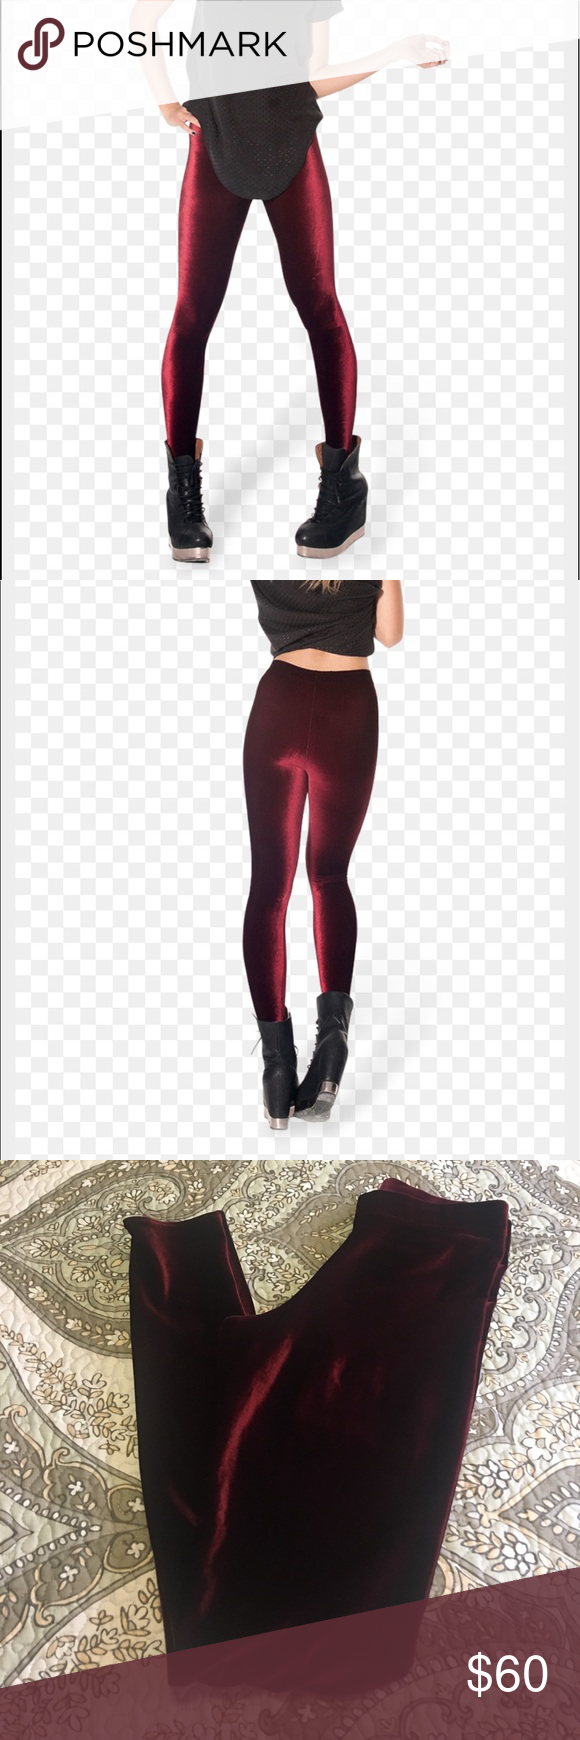 Blackmilk mulled wine velvet leggings Blackmilk mulled wine leggings. Would love to trade for a size medium they are just to snug for me. Have never worn them. Blackmilk Pants Leggings